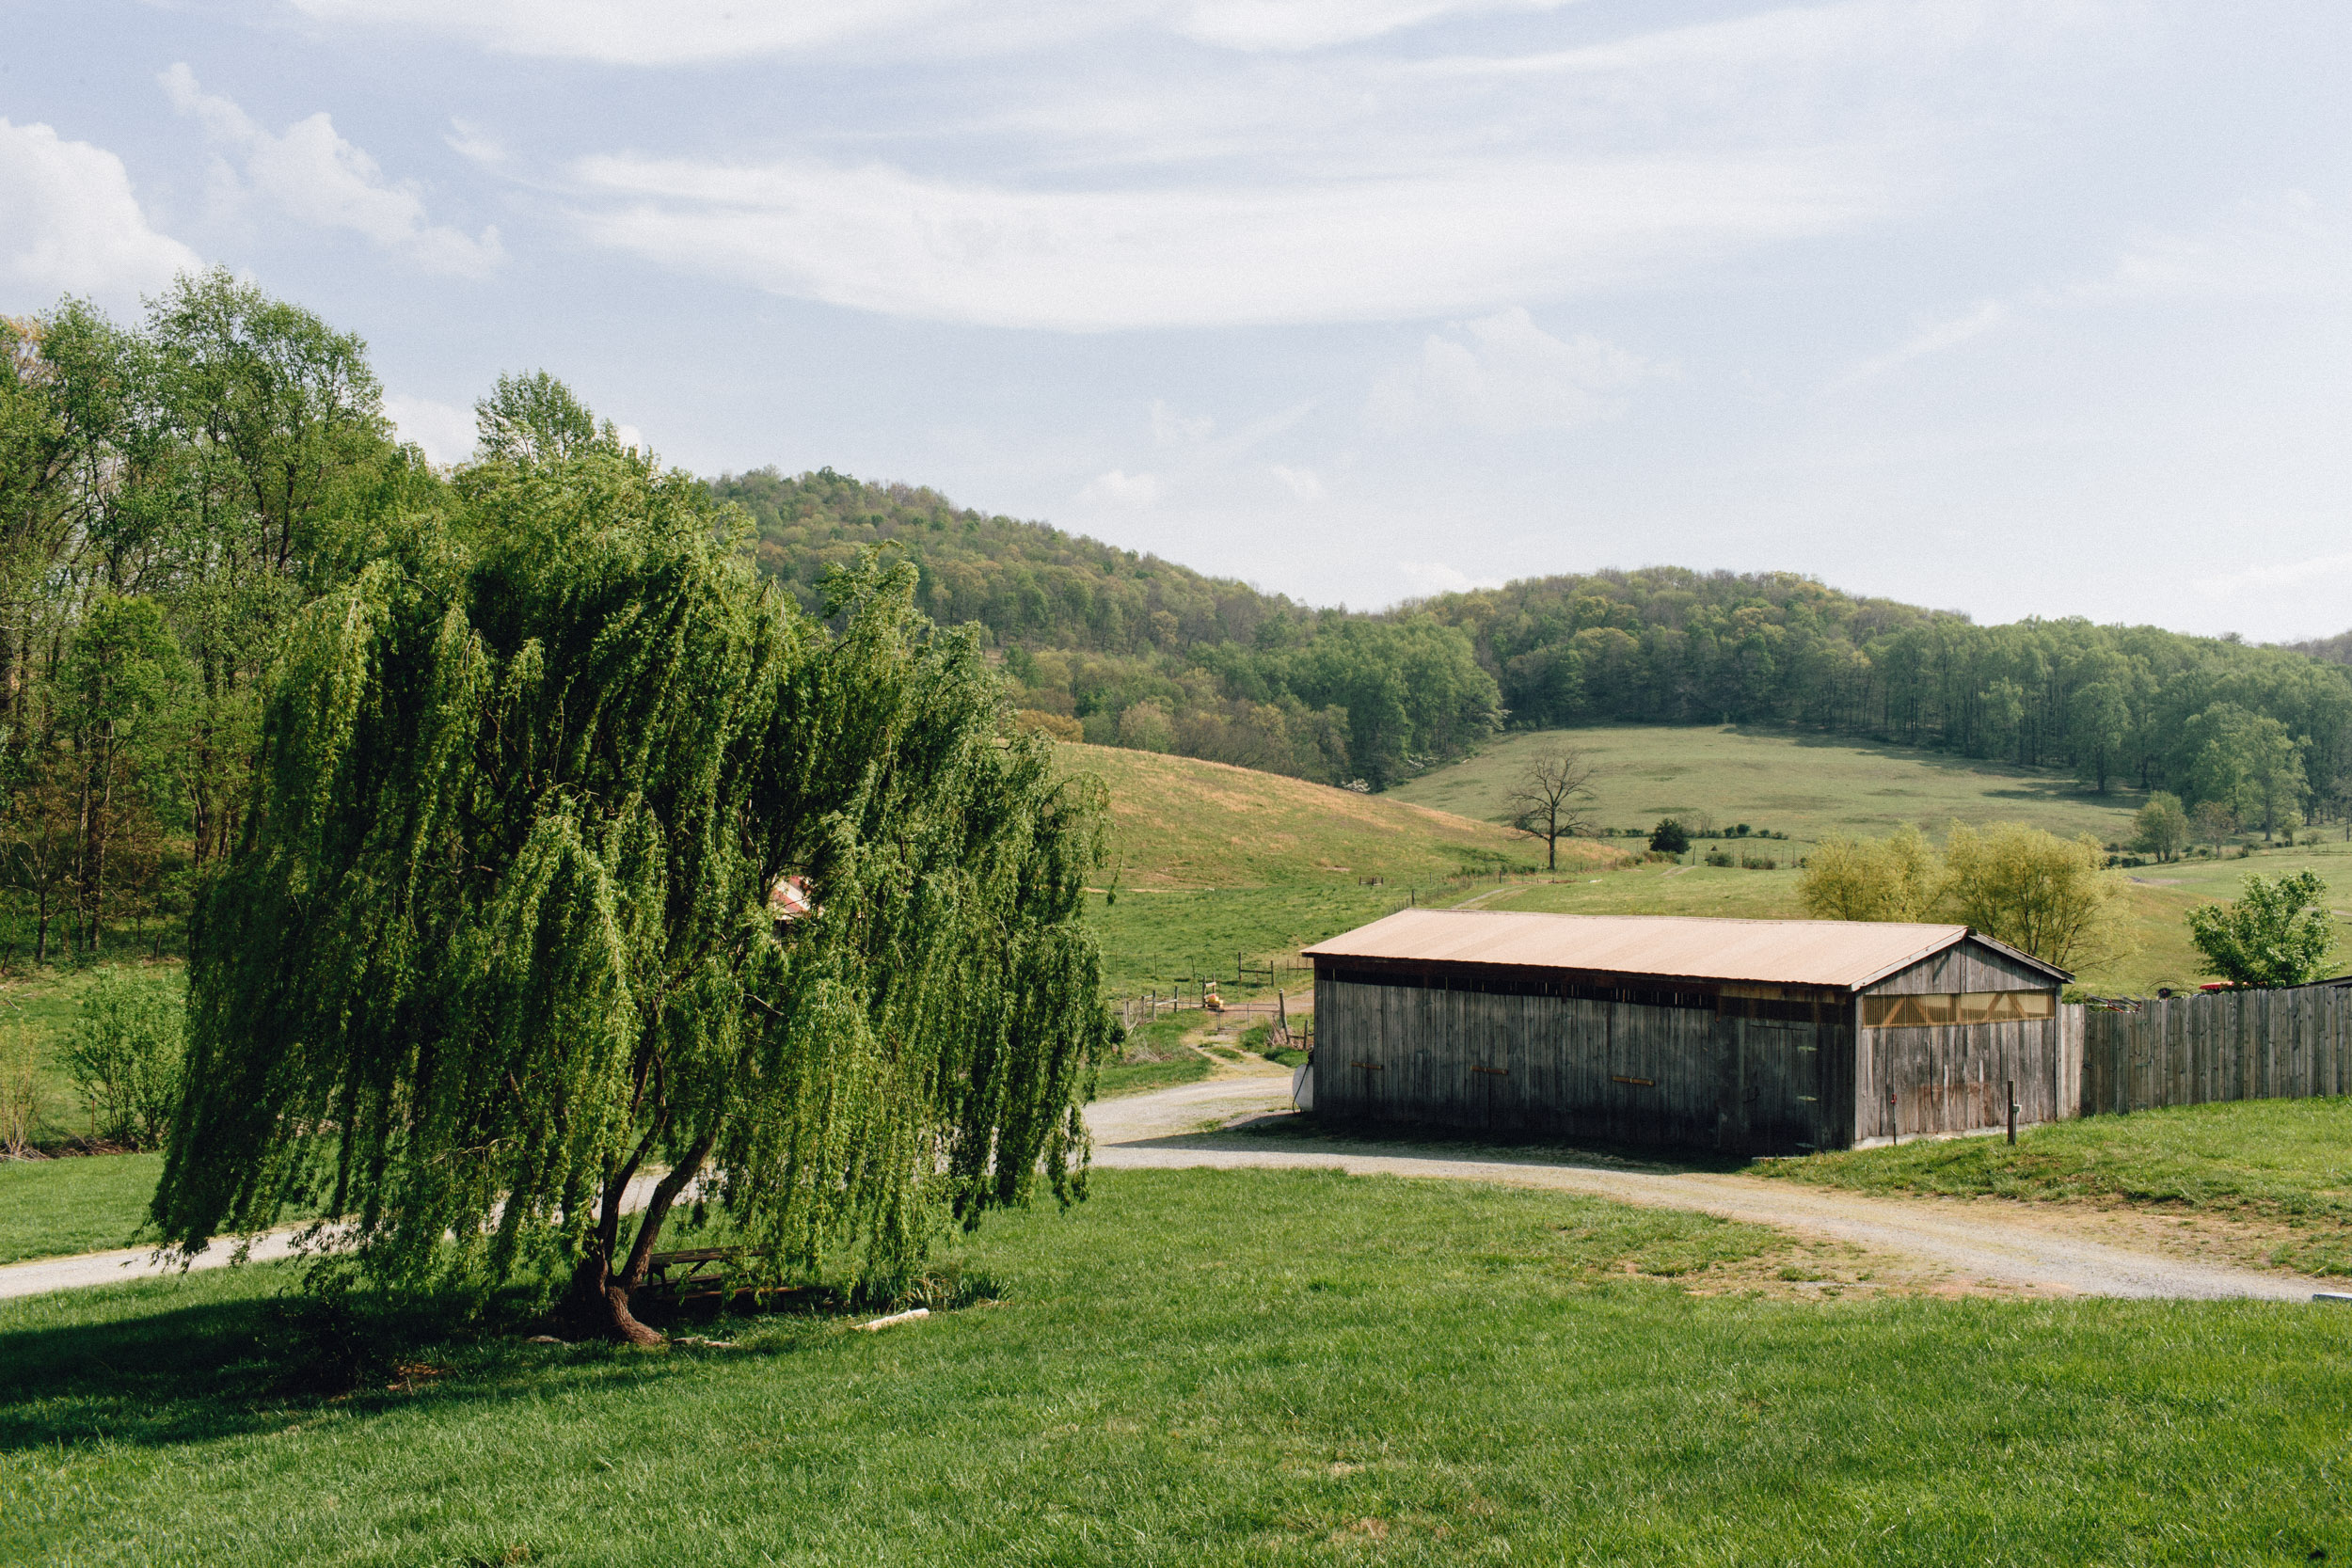 Beautiful landscapes at Short Mountain Farm, which houses Canon County's first, and only primarily Moonshine and Bourbon small-batch distillery.